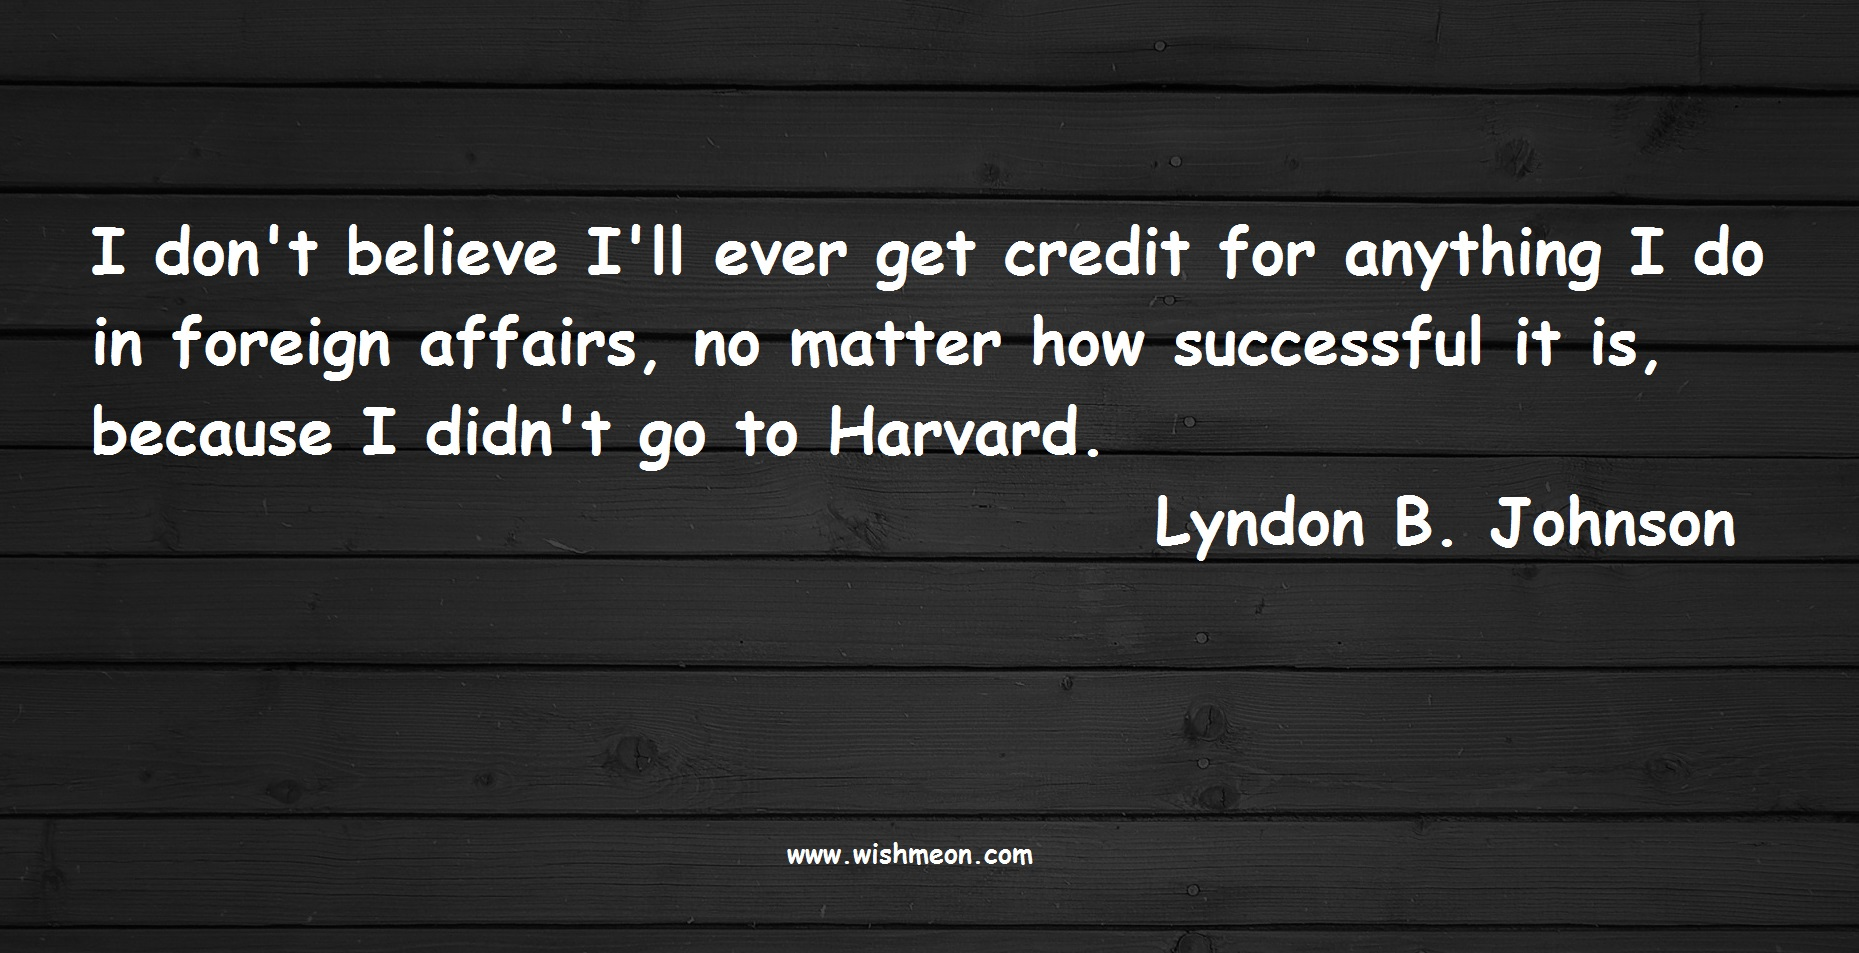 I don't believe I'll ever get credit for anything I do in foreign affairs, no matter how successful it is, because I didn't go to Harvard. Lyndon B. Johnson